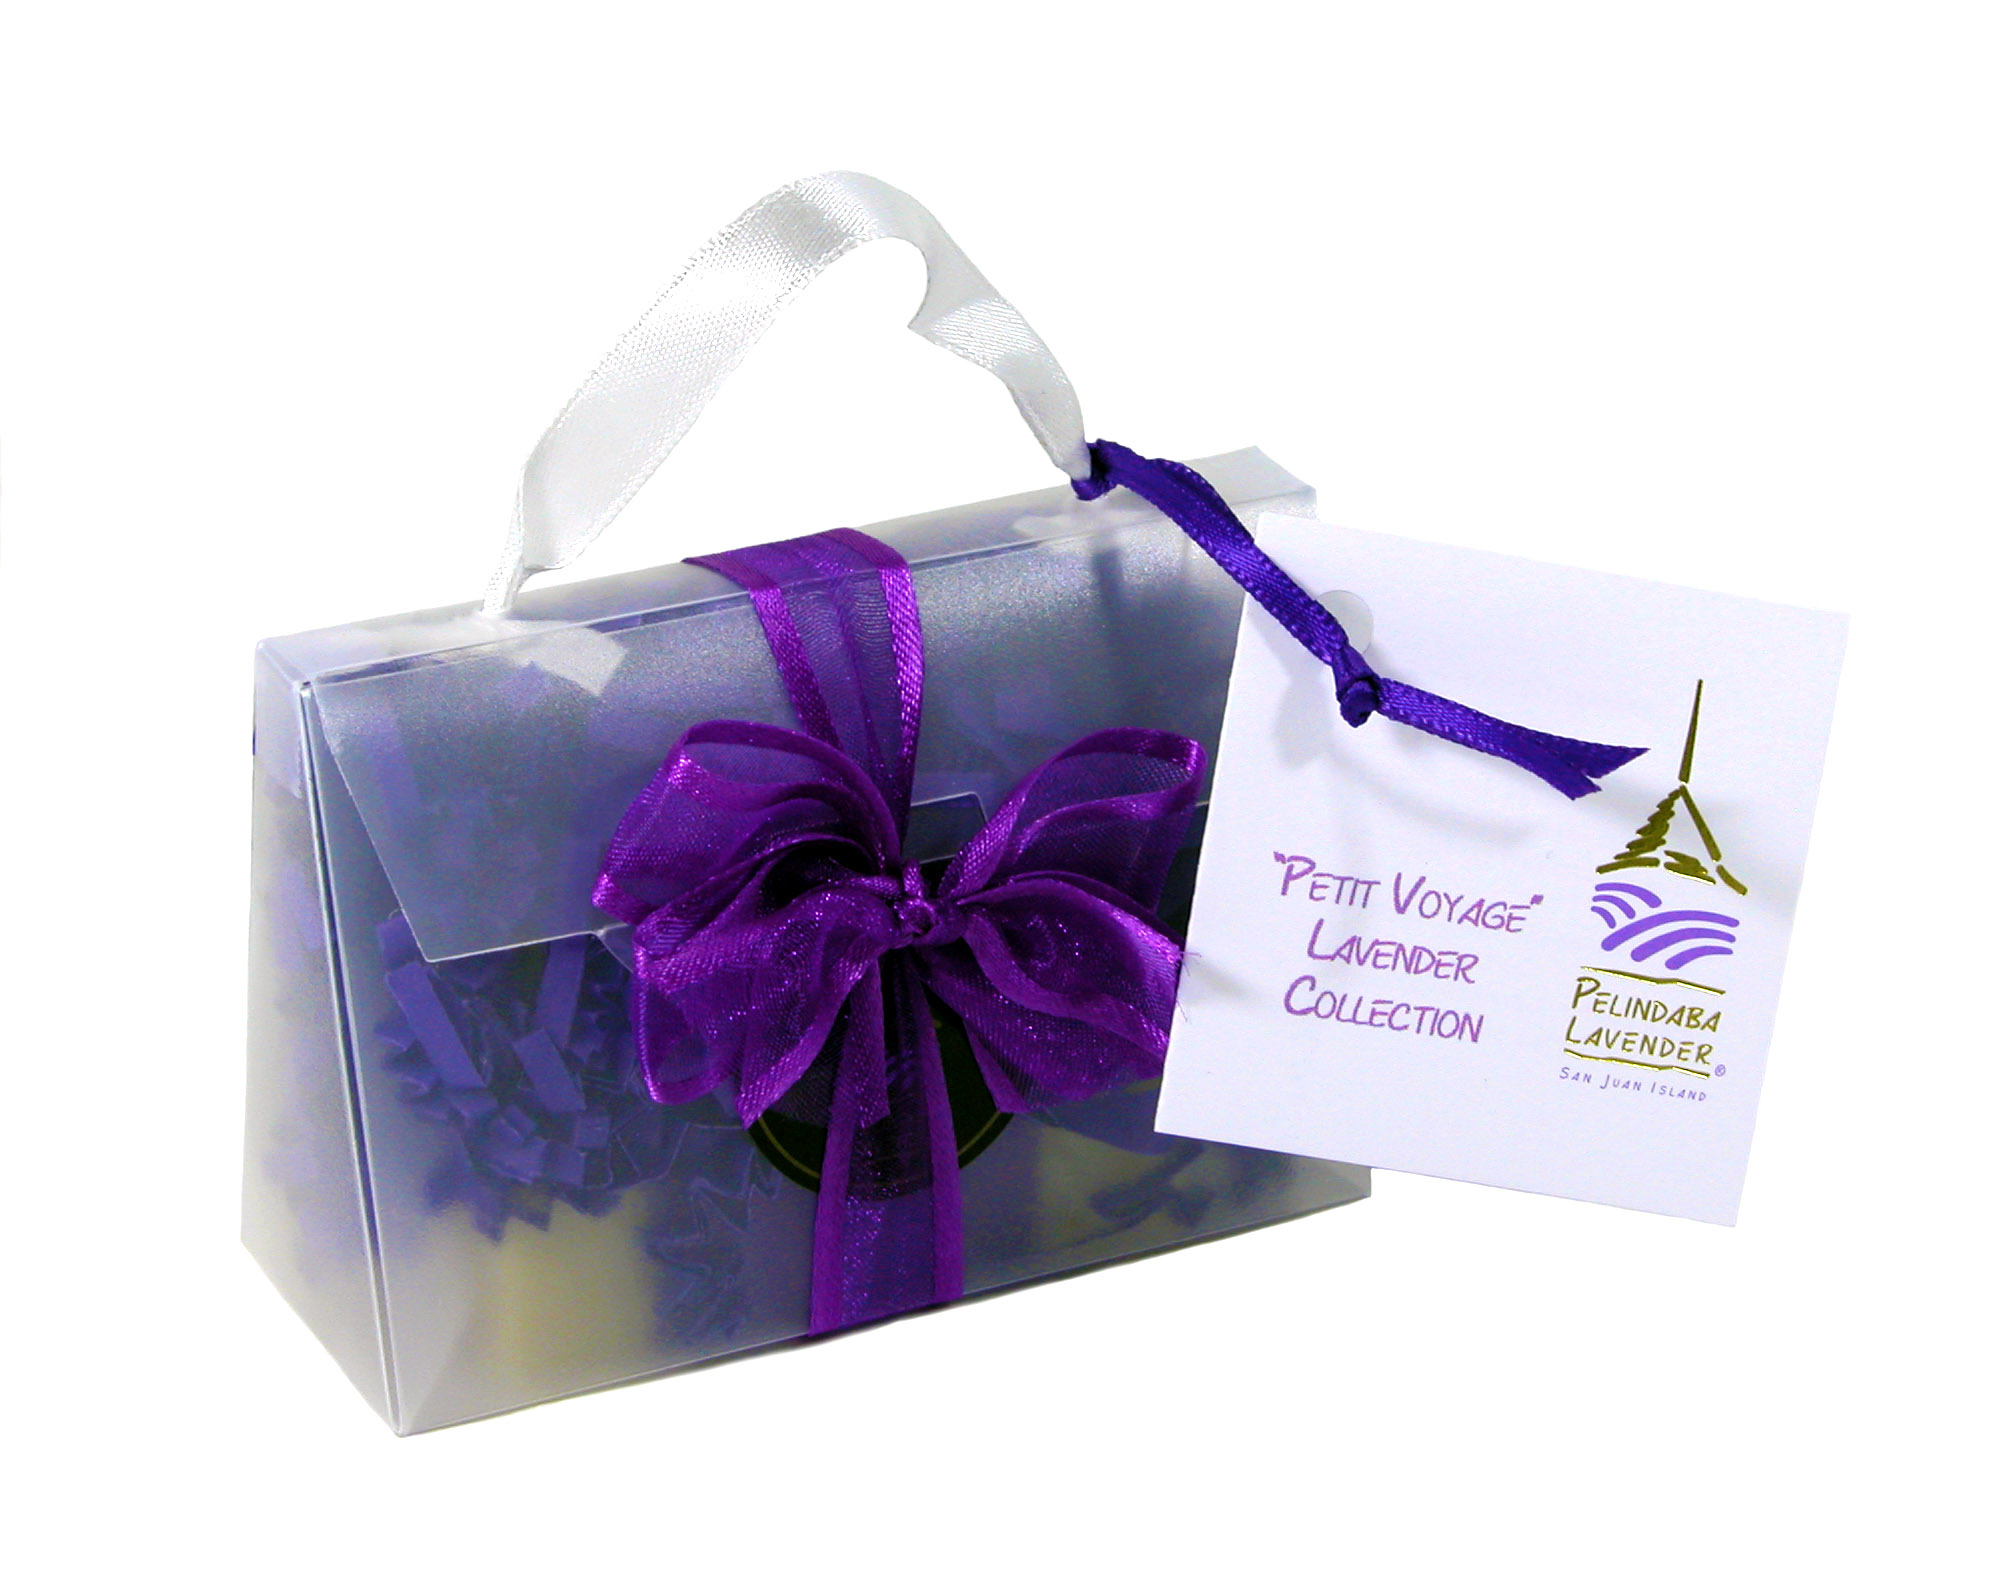 Lavender Petit Voyage Gift Collection made by Pelindaba Lavender